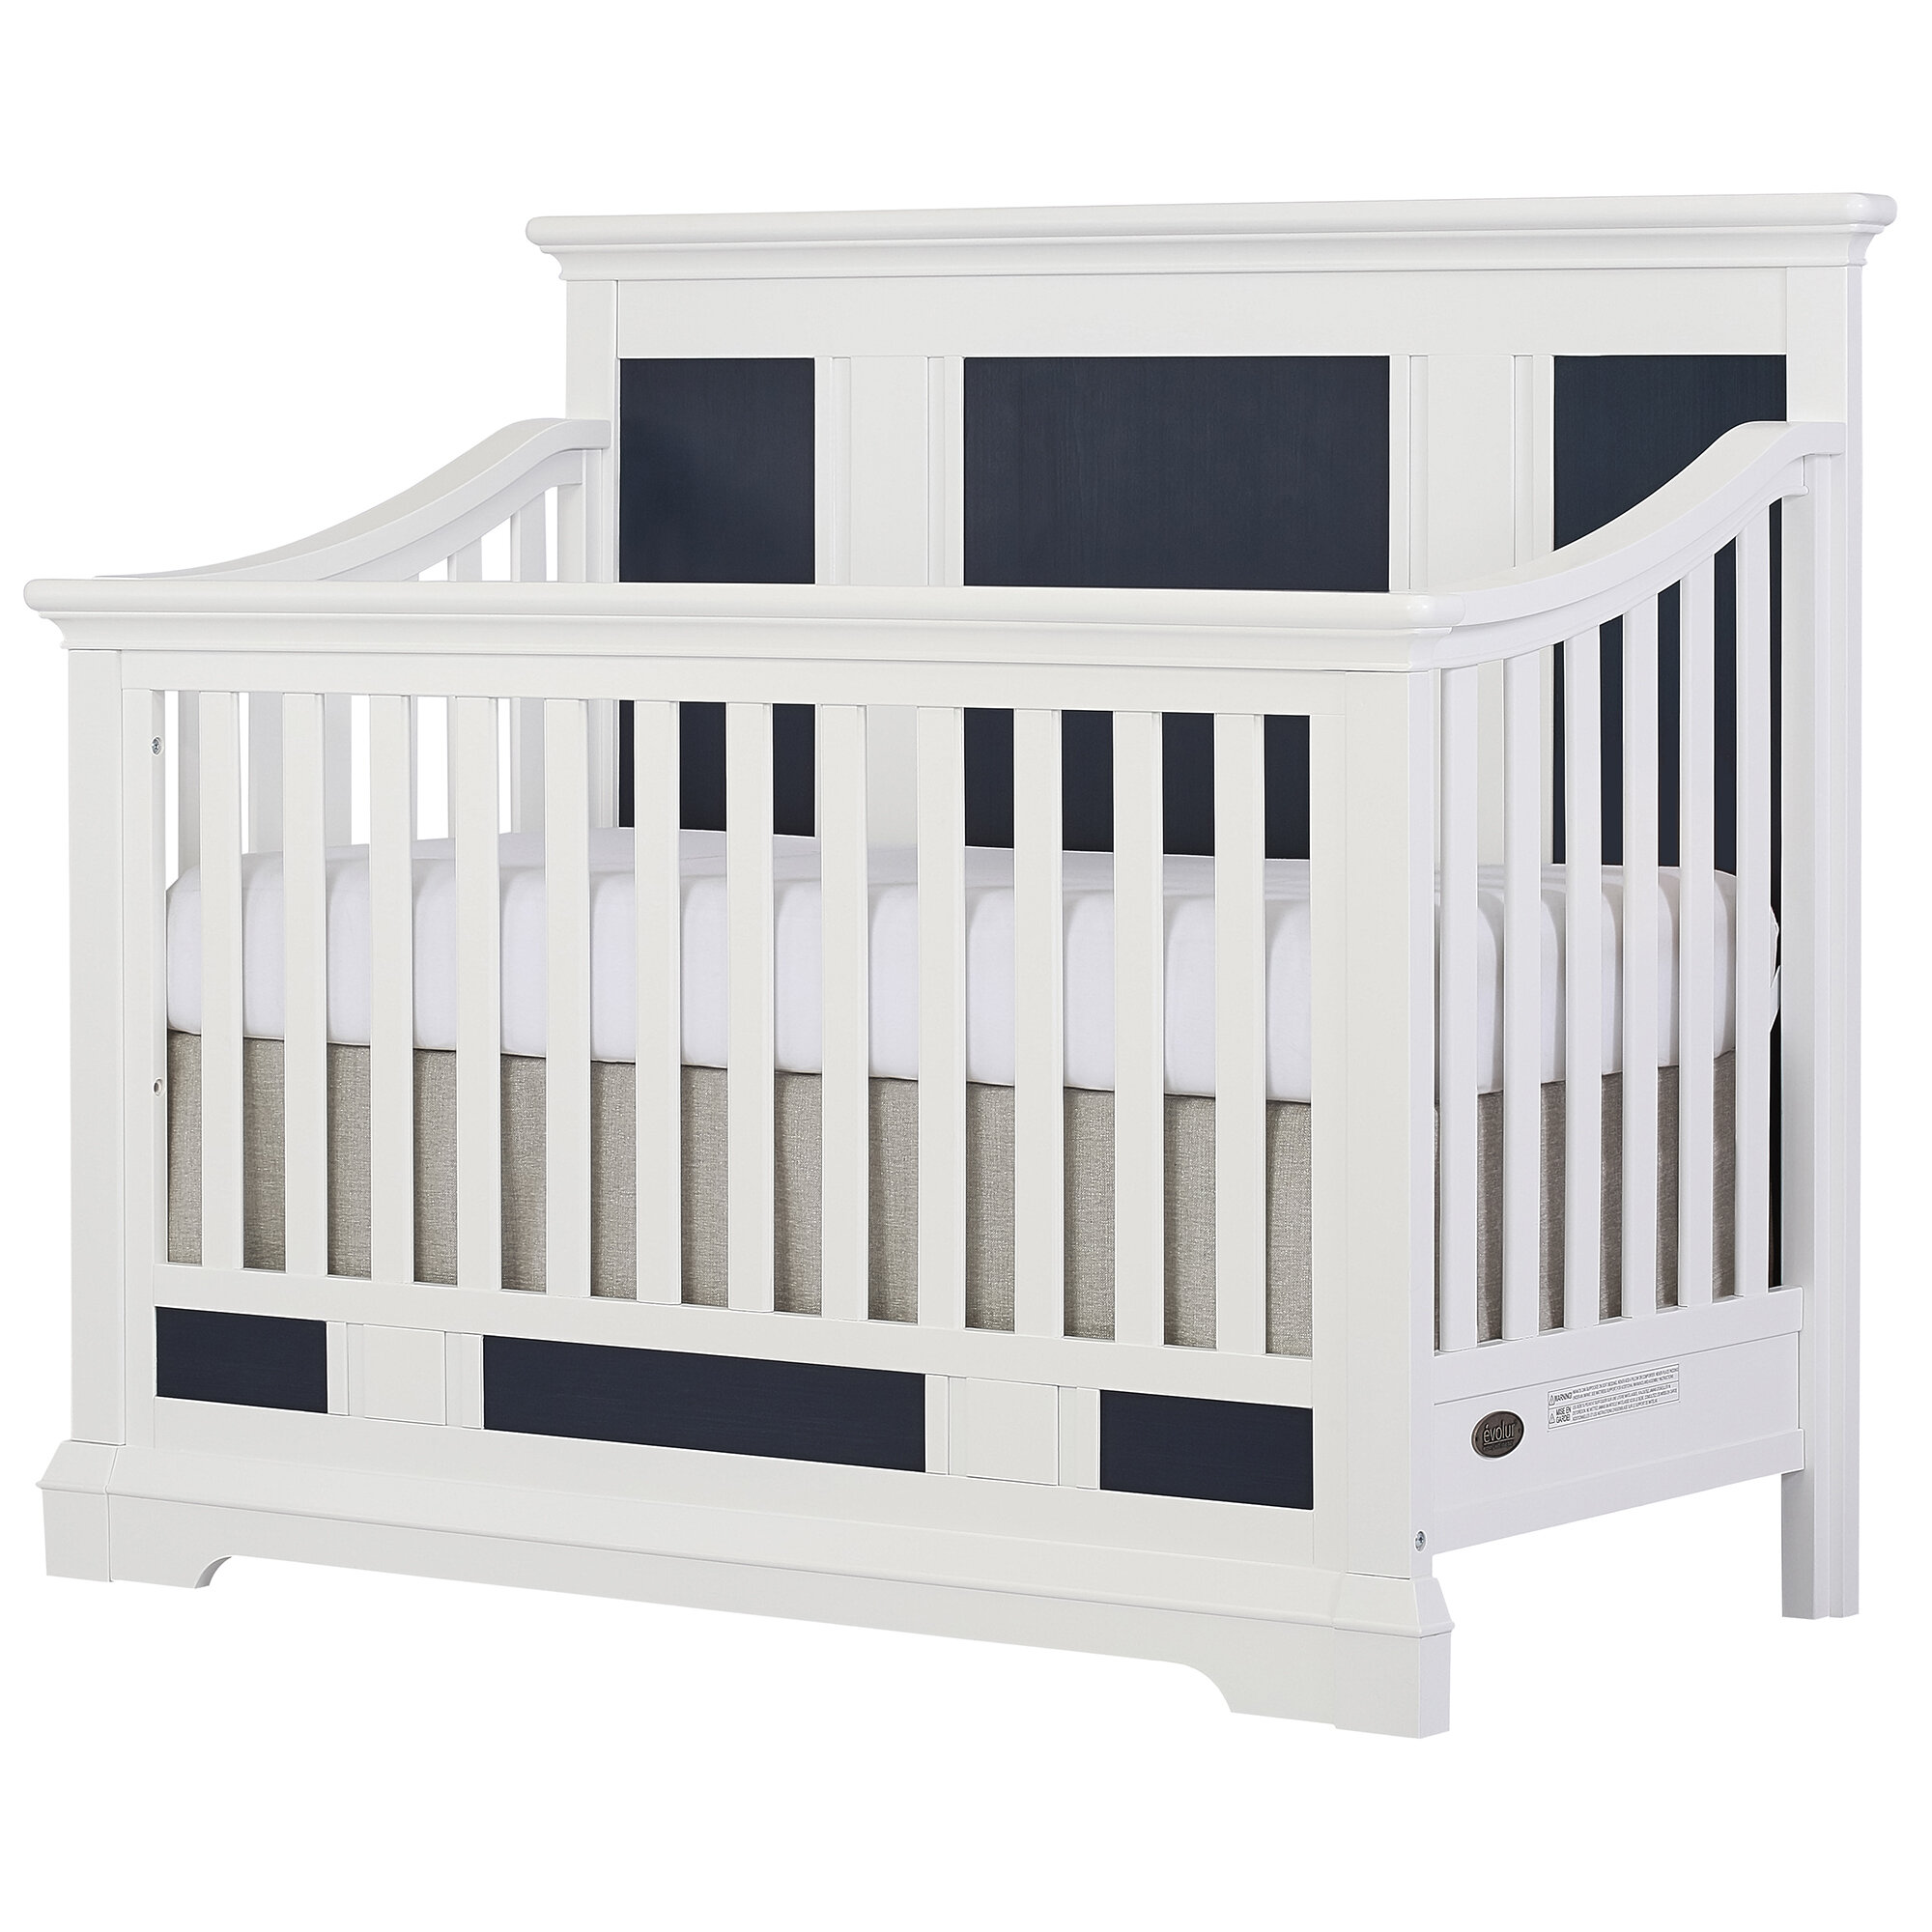 convertible bed turns dp gray graco view crib into larger ca in amazon baby rory pebble